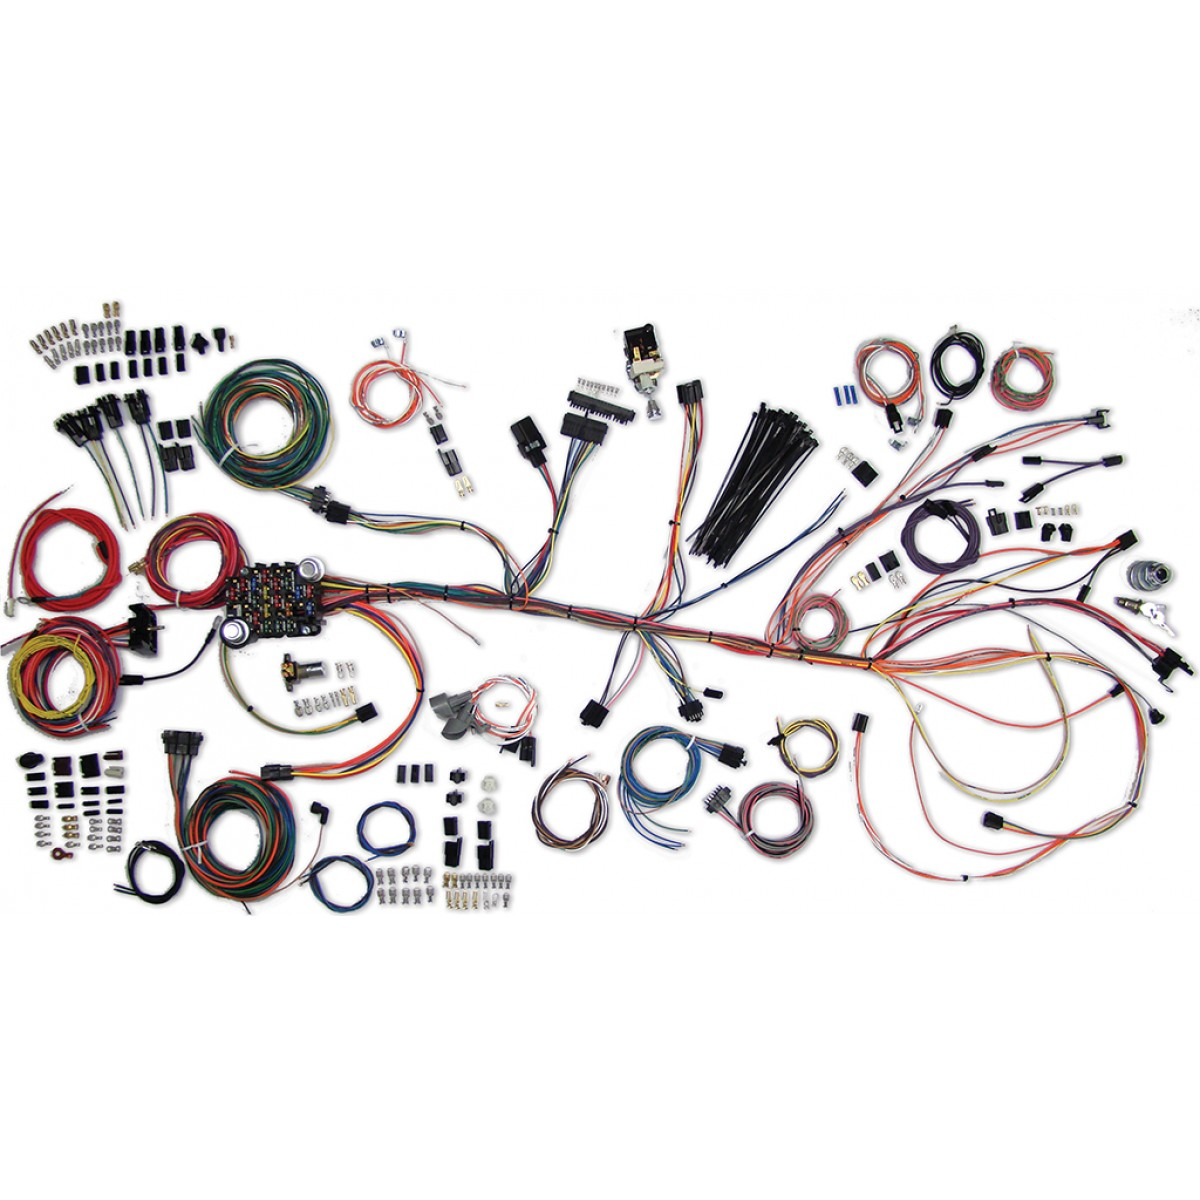 hight resolution of 1964 1967 el camino wiring harness kit el camino wiring part 69 el camino wiring harness el camino wiring harness